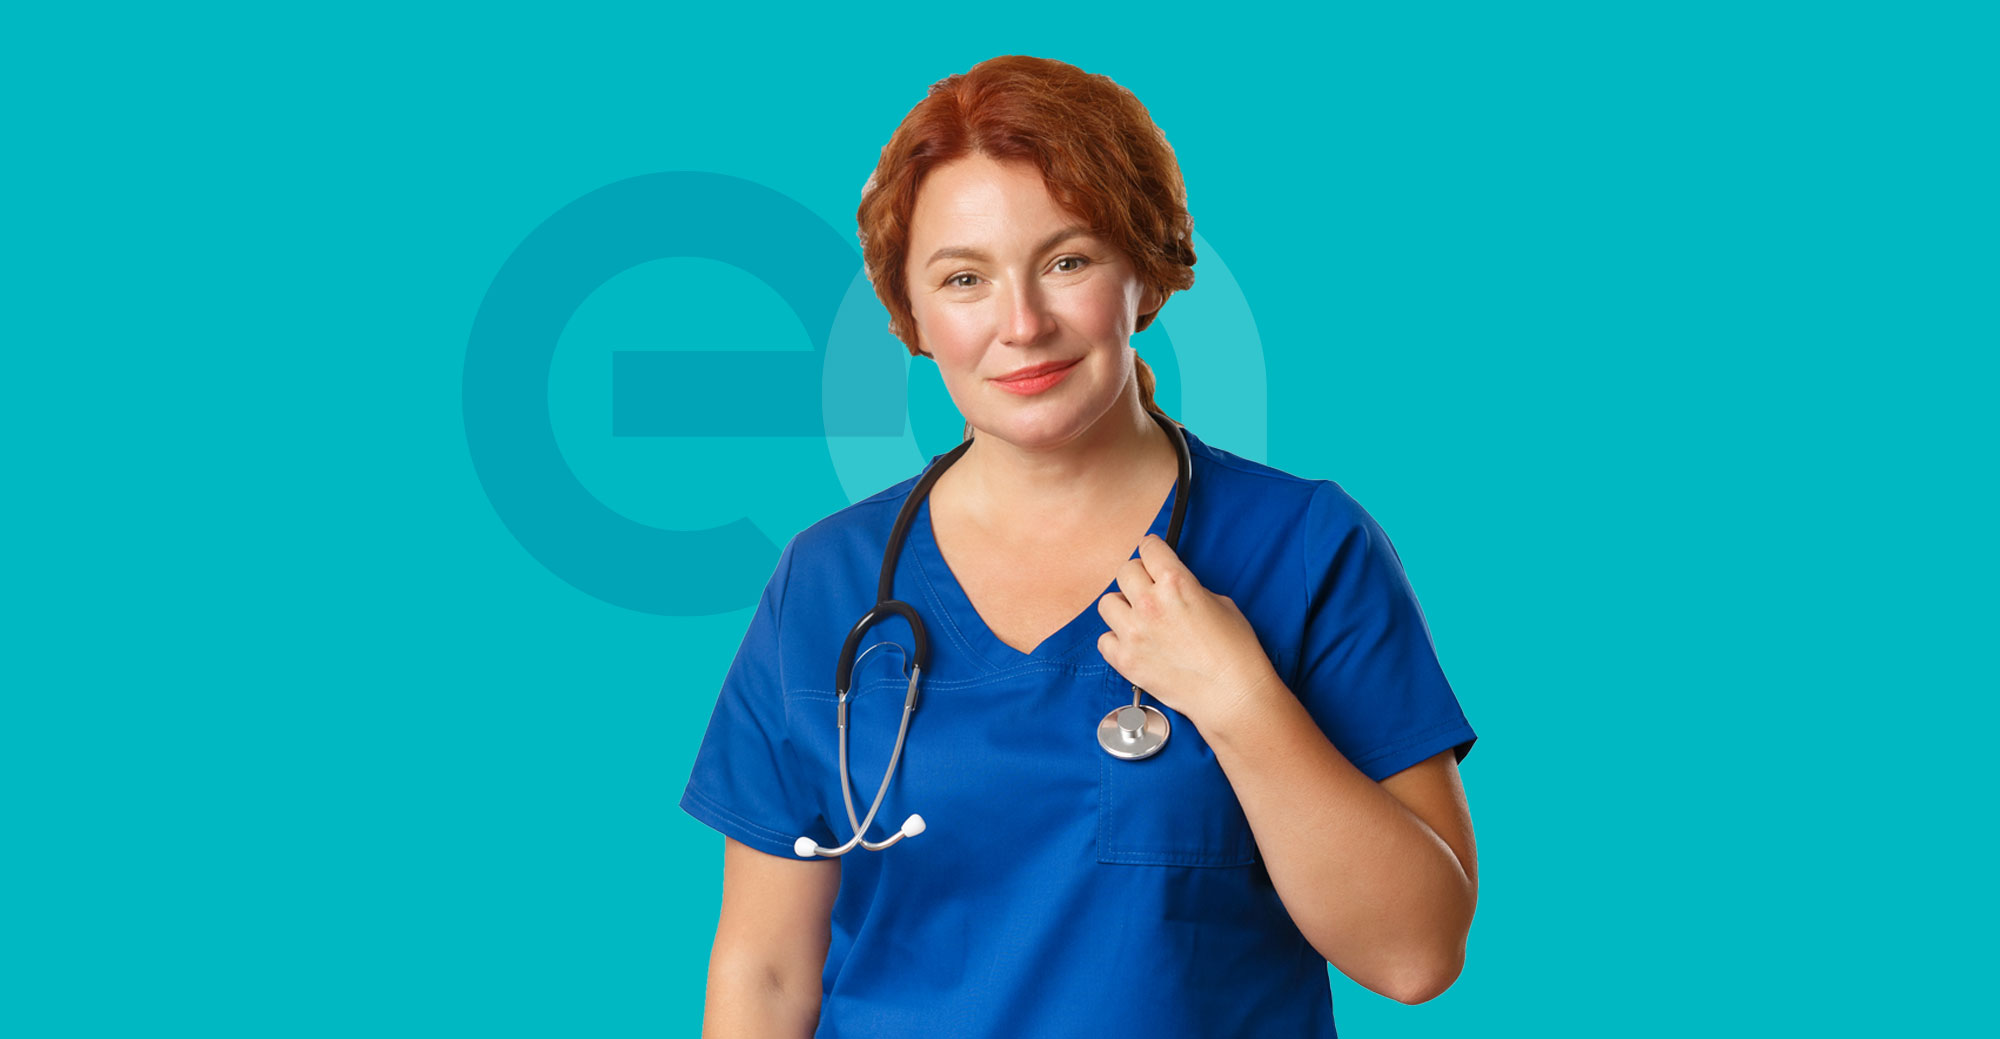 Veterinary practice owner with EA logo